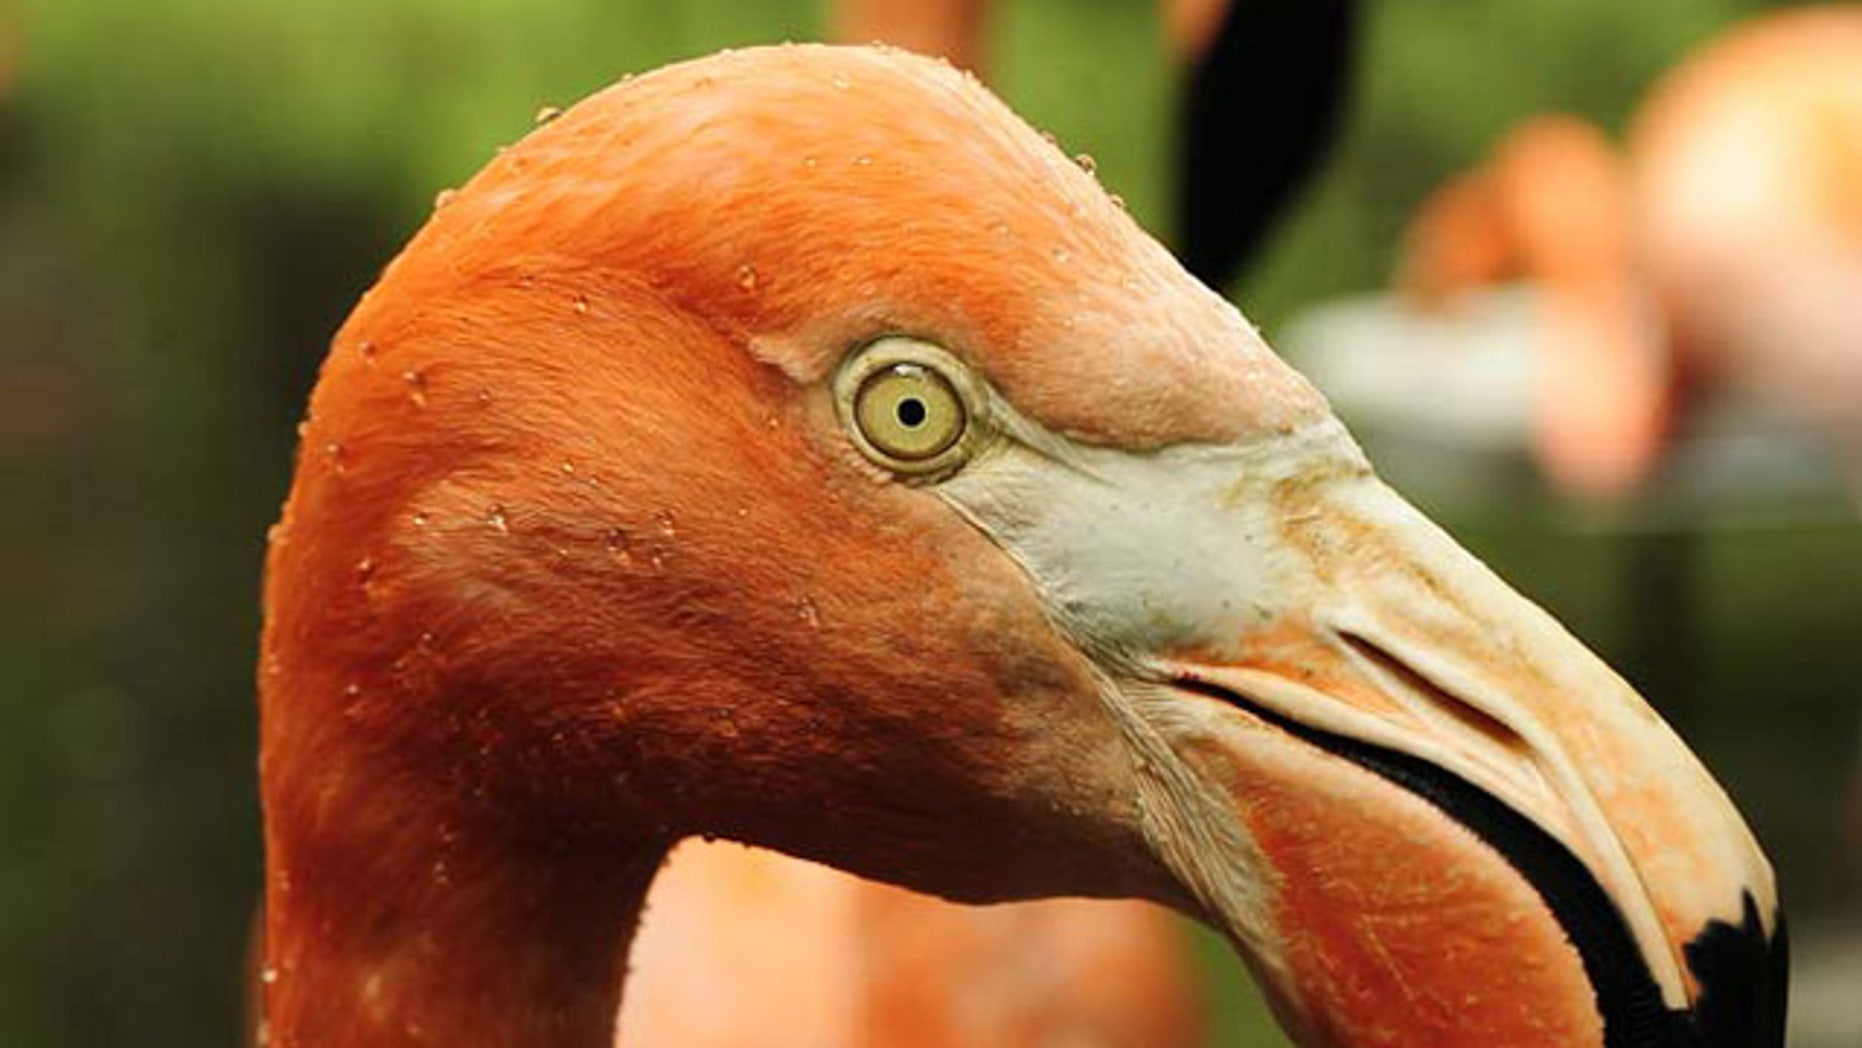 Flamingoes are strongly affected by declines in the availability and quality of wetland habitat in the Caribbean, South America, Asia and Africa.